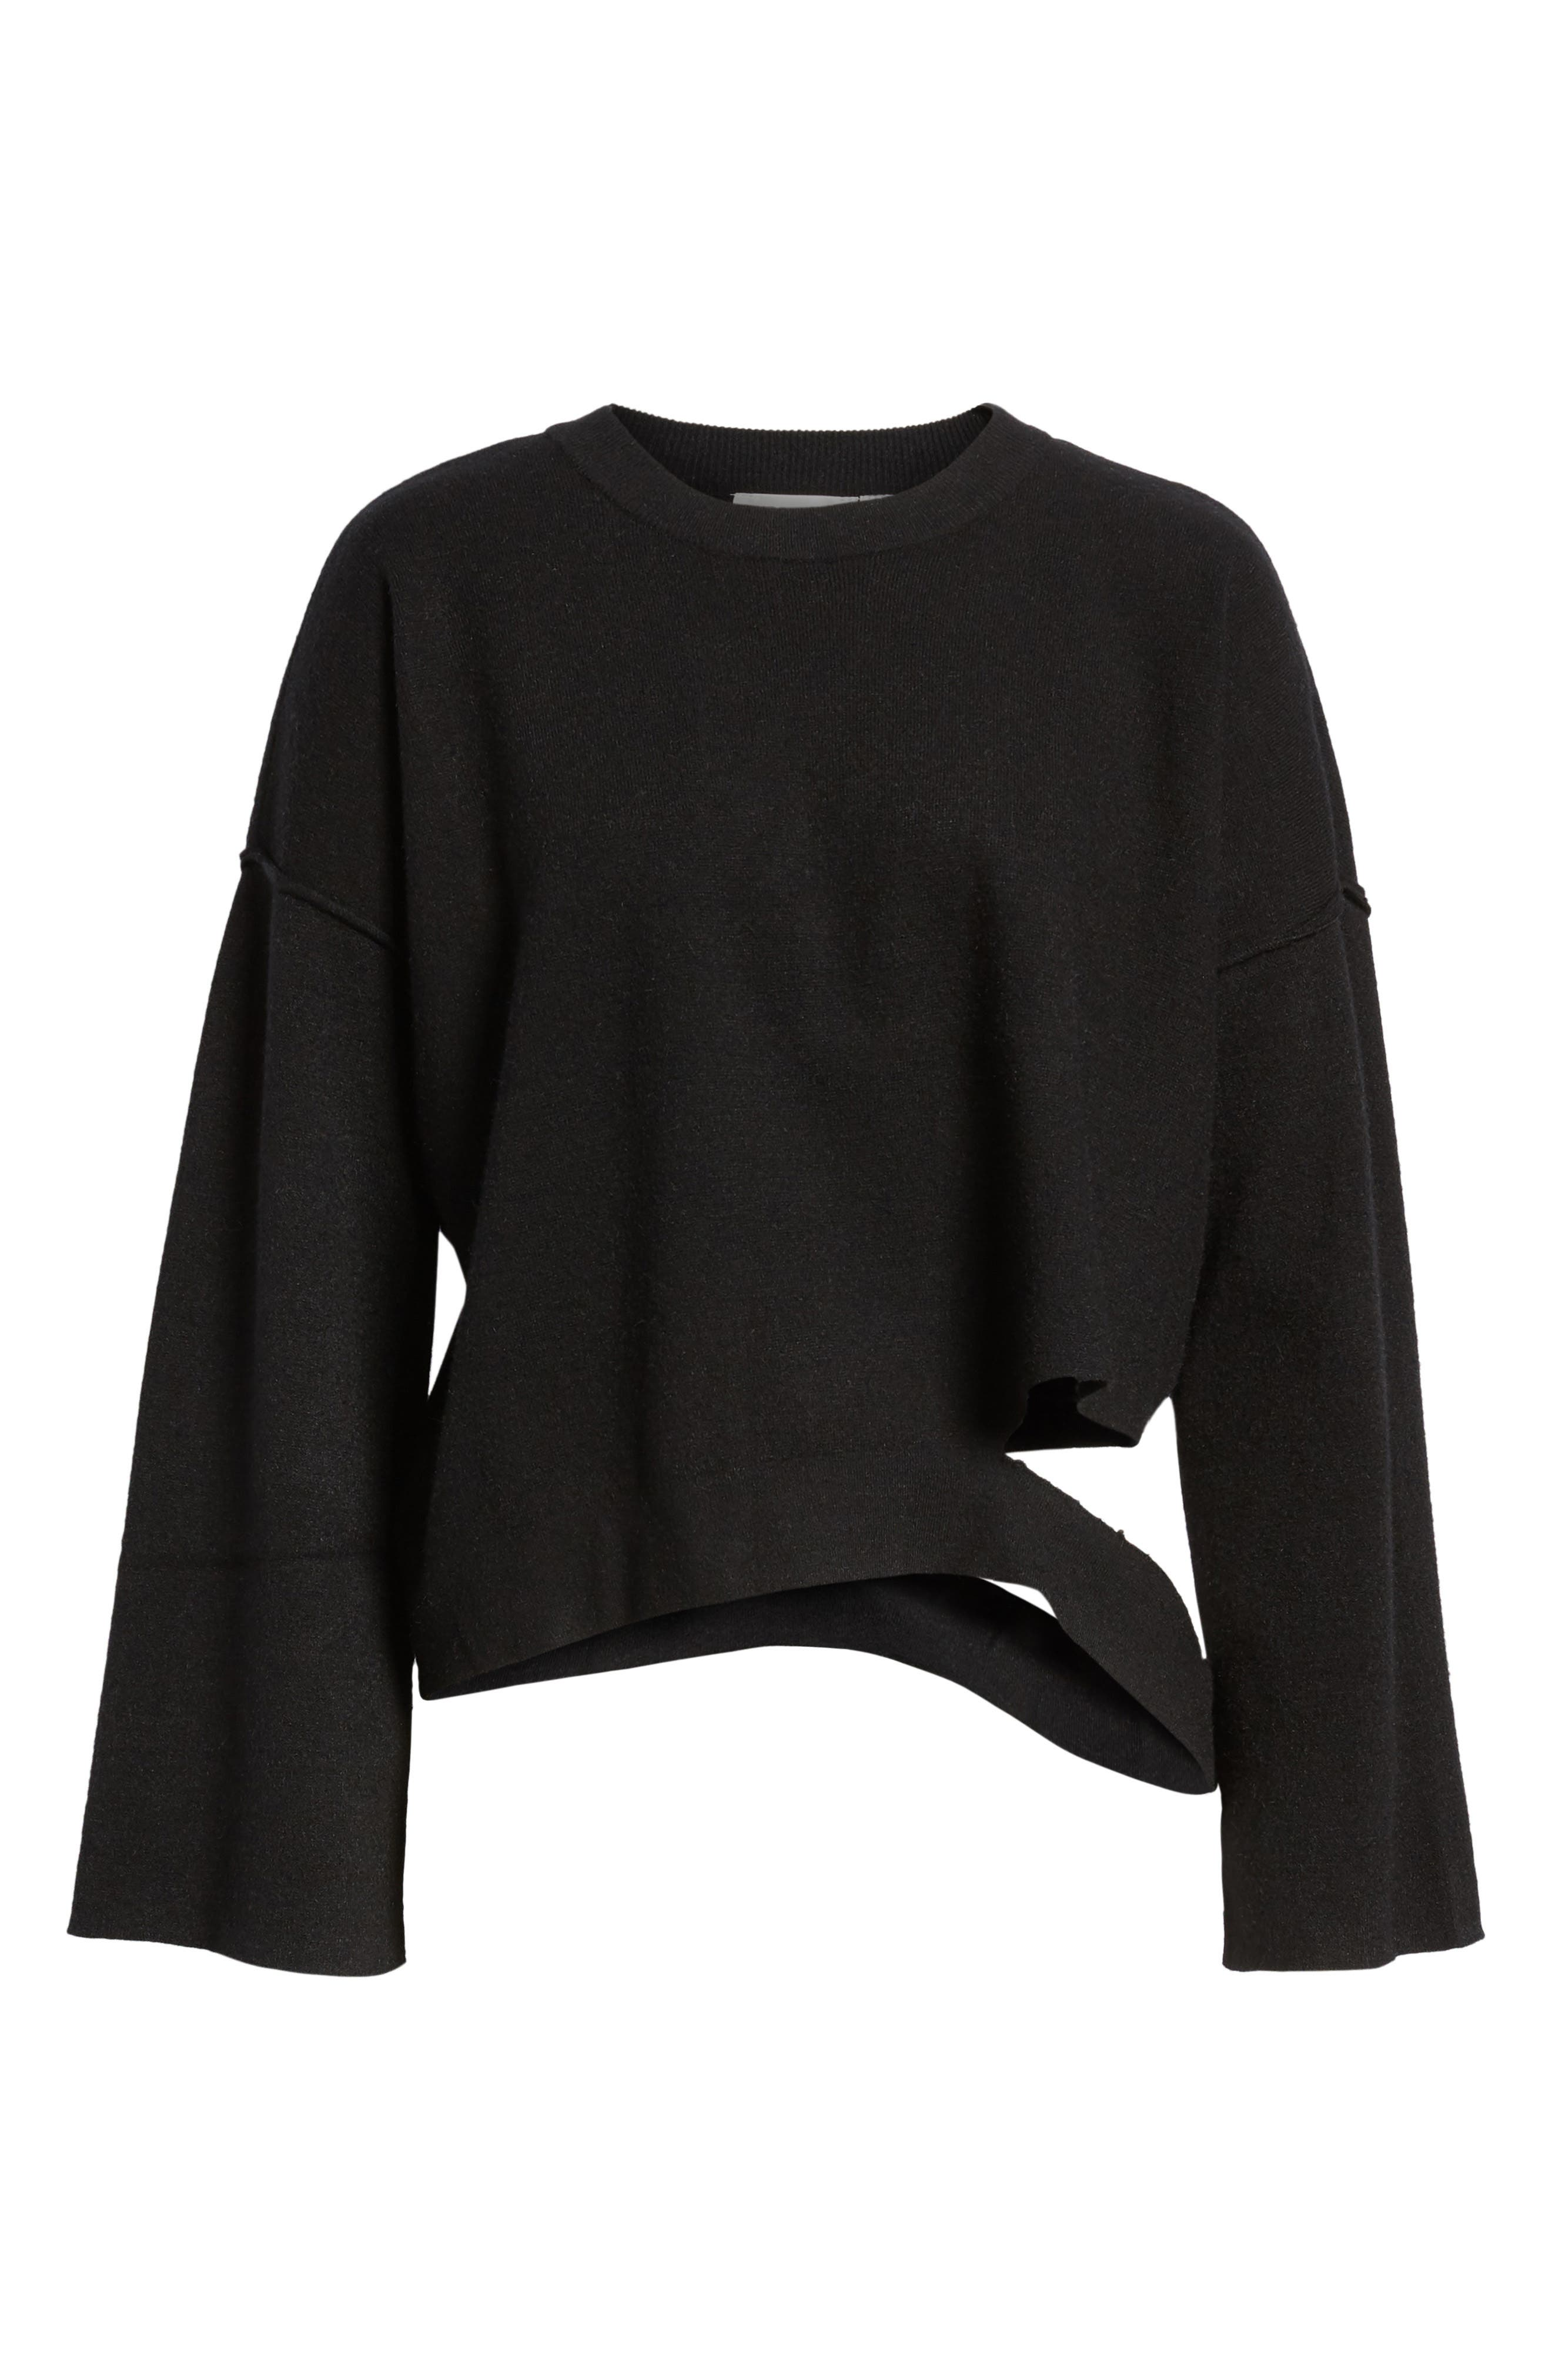 Bottom Cutout Pullover,                             Alternate thumbnail 6, color,                             001